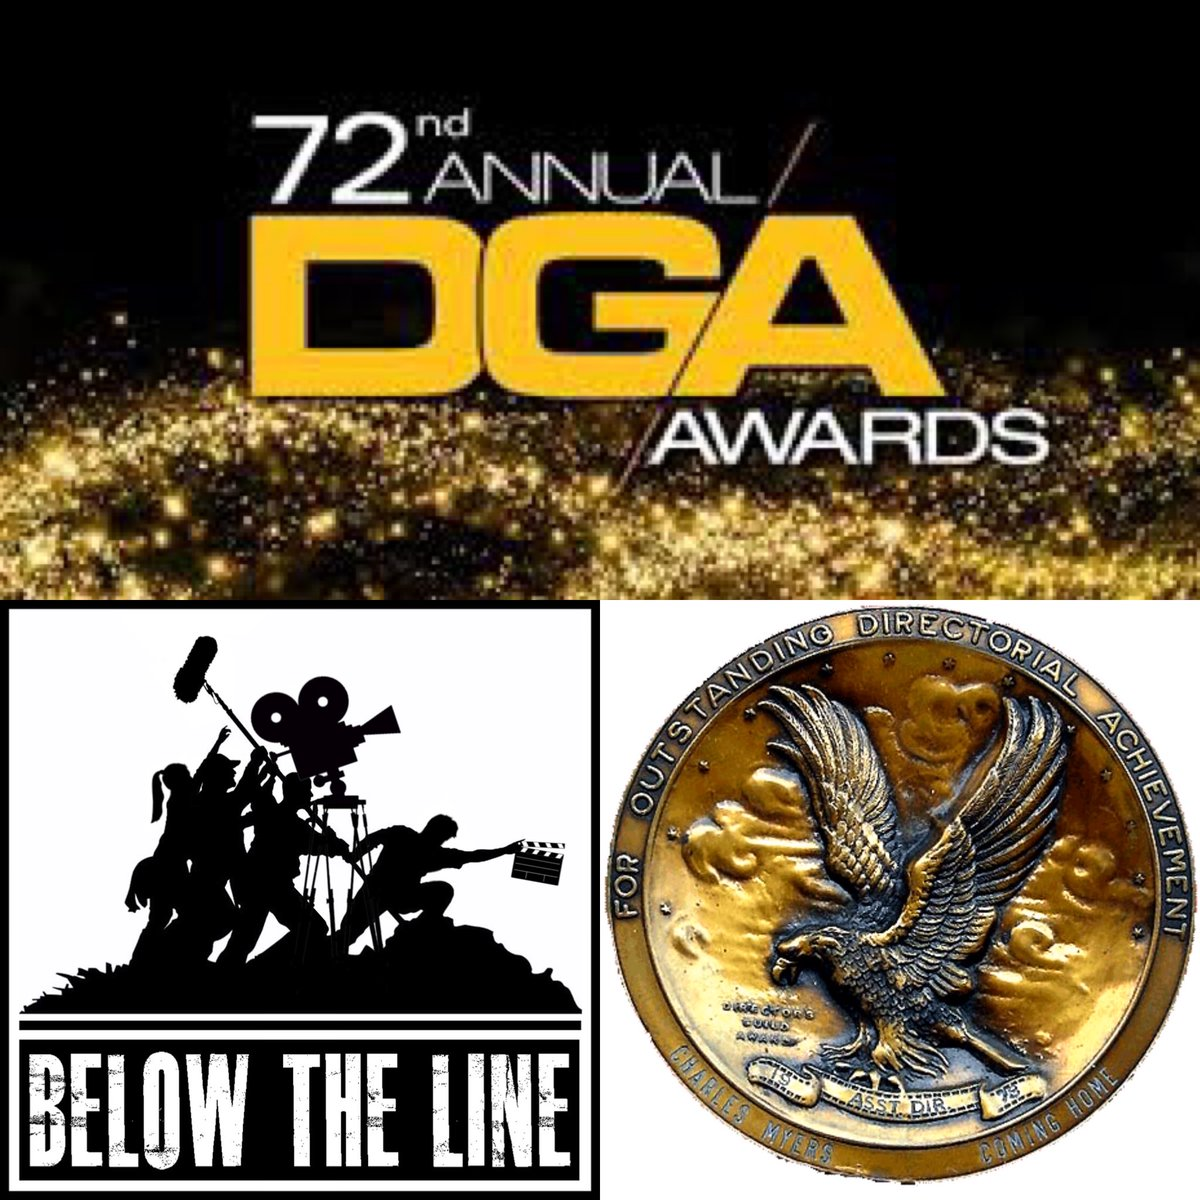 #AwardsSeason is upon us! #BelowtheLine Season 4 is a #BTS look at the nominees. Today = #DGA (1 of 3) Listen at http://belowtheline.biz or wherever you get podcasts #bts #setlife #filmcrew #hollywood #filmindustry #moviemaking #FilmTwitter #PodernFamily @directorsguildpic.twitter.com/3S2wg7hVsV